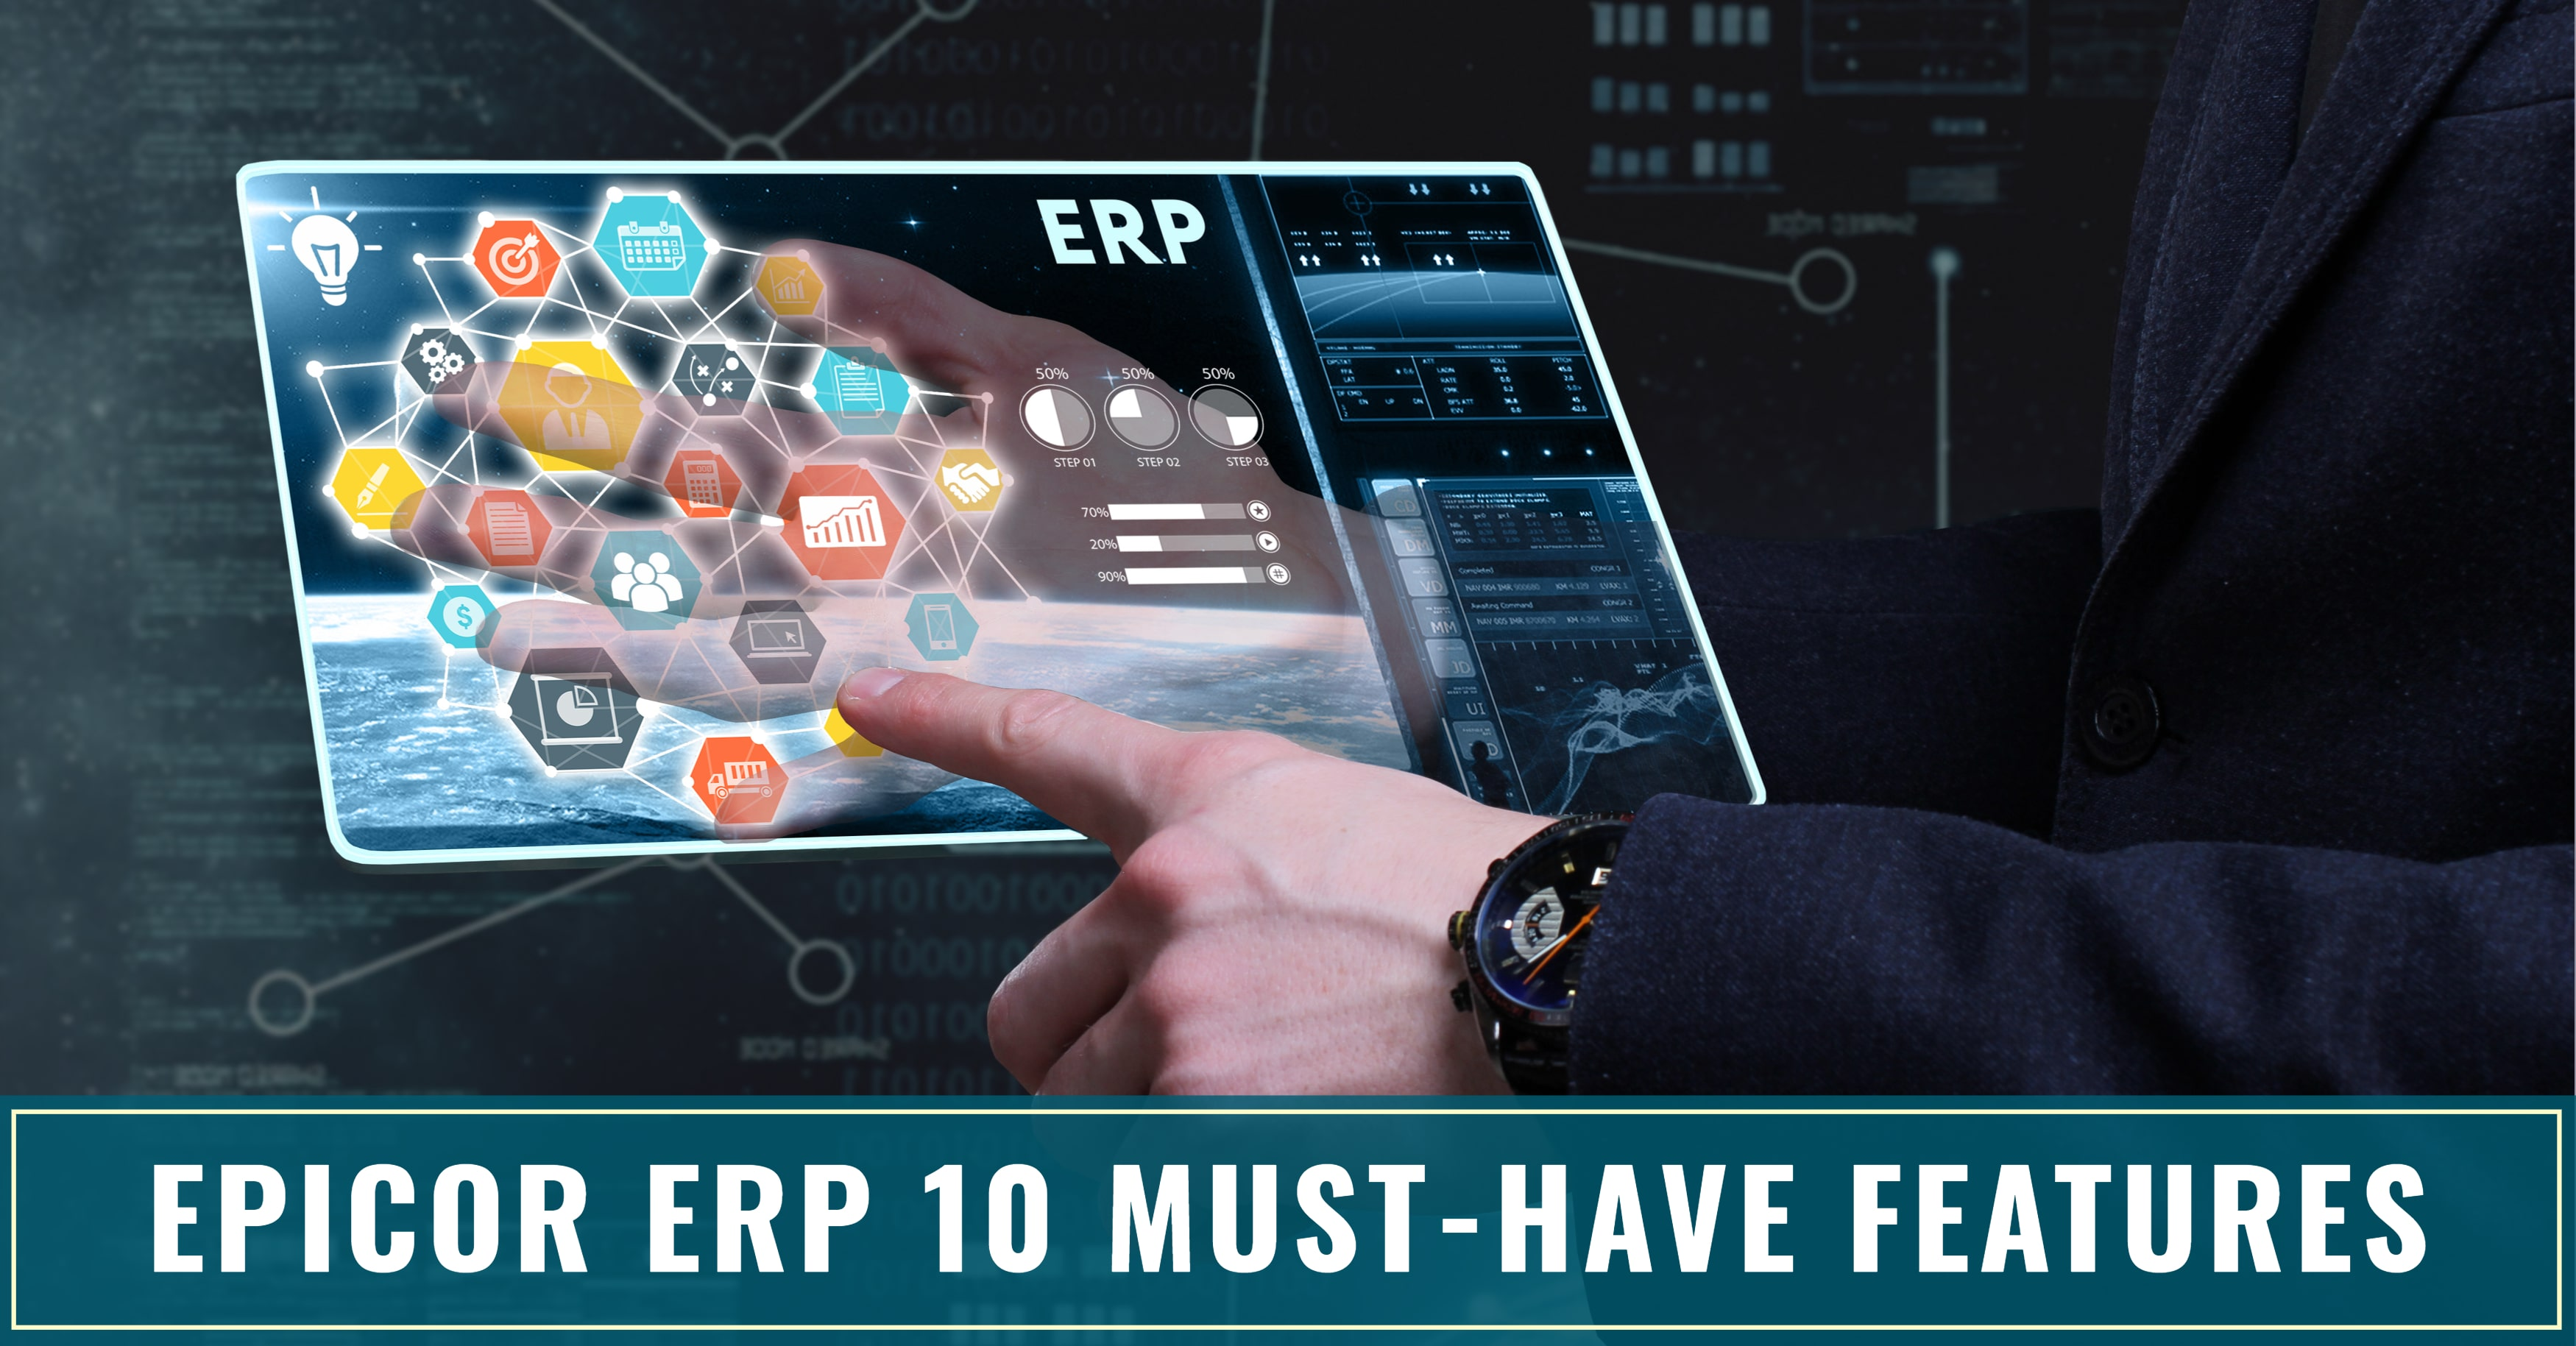 Epicor ERP 10 Features